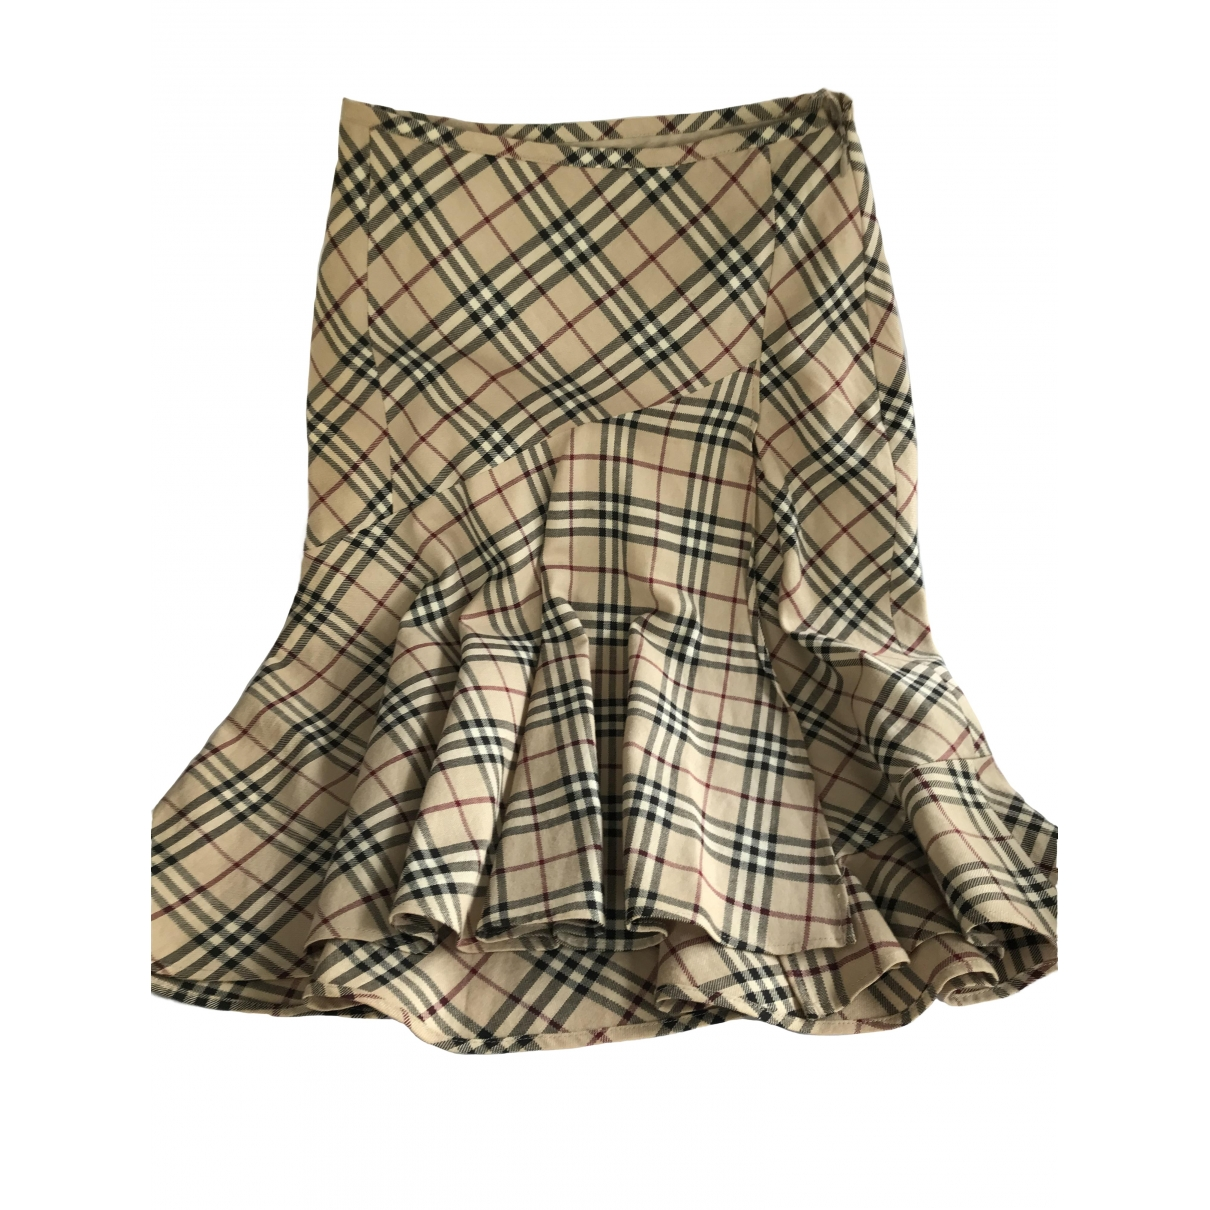 Burberry \N Beige Cotton skirt for Women 36 FR